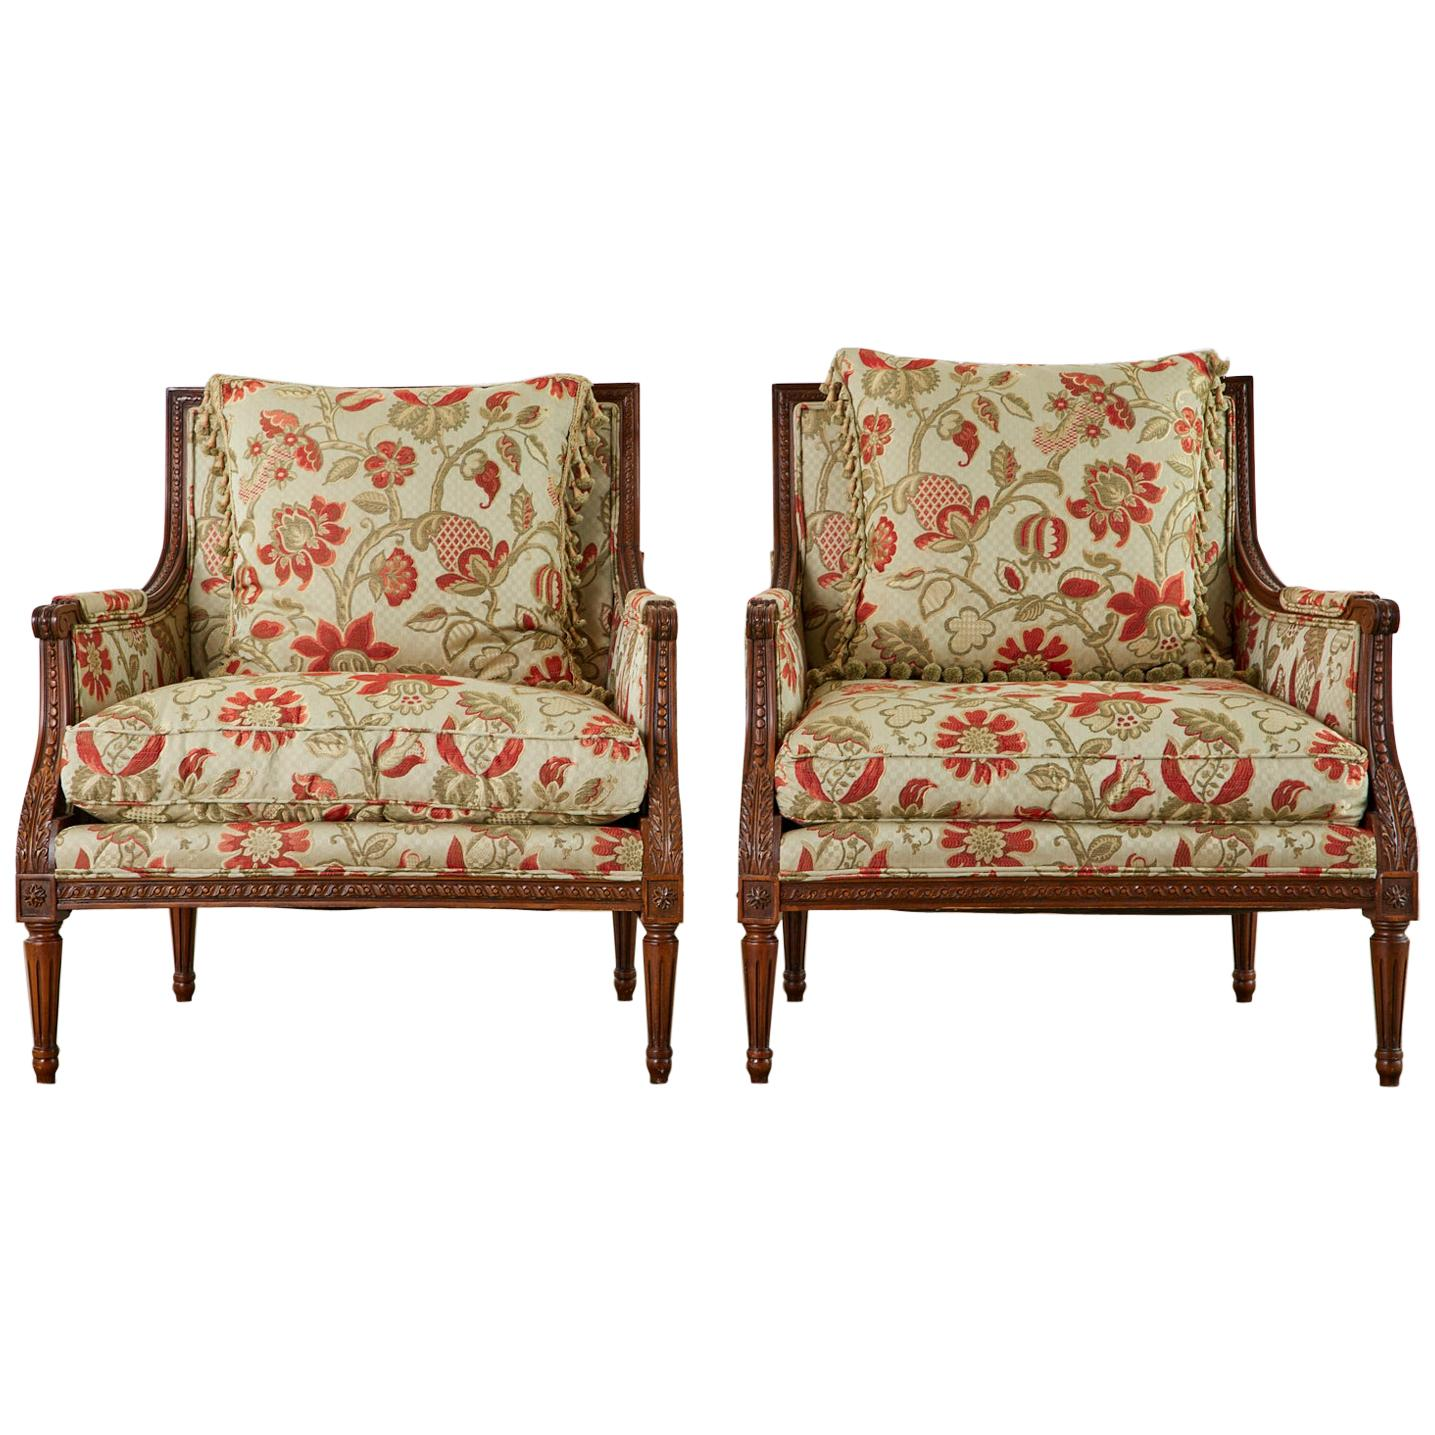 Pair of French Louis XVI Style Mahogany Bergère Armchairs